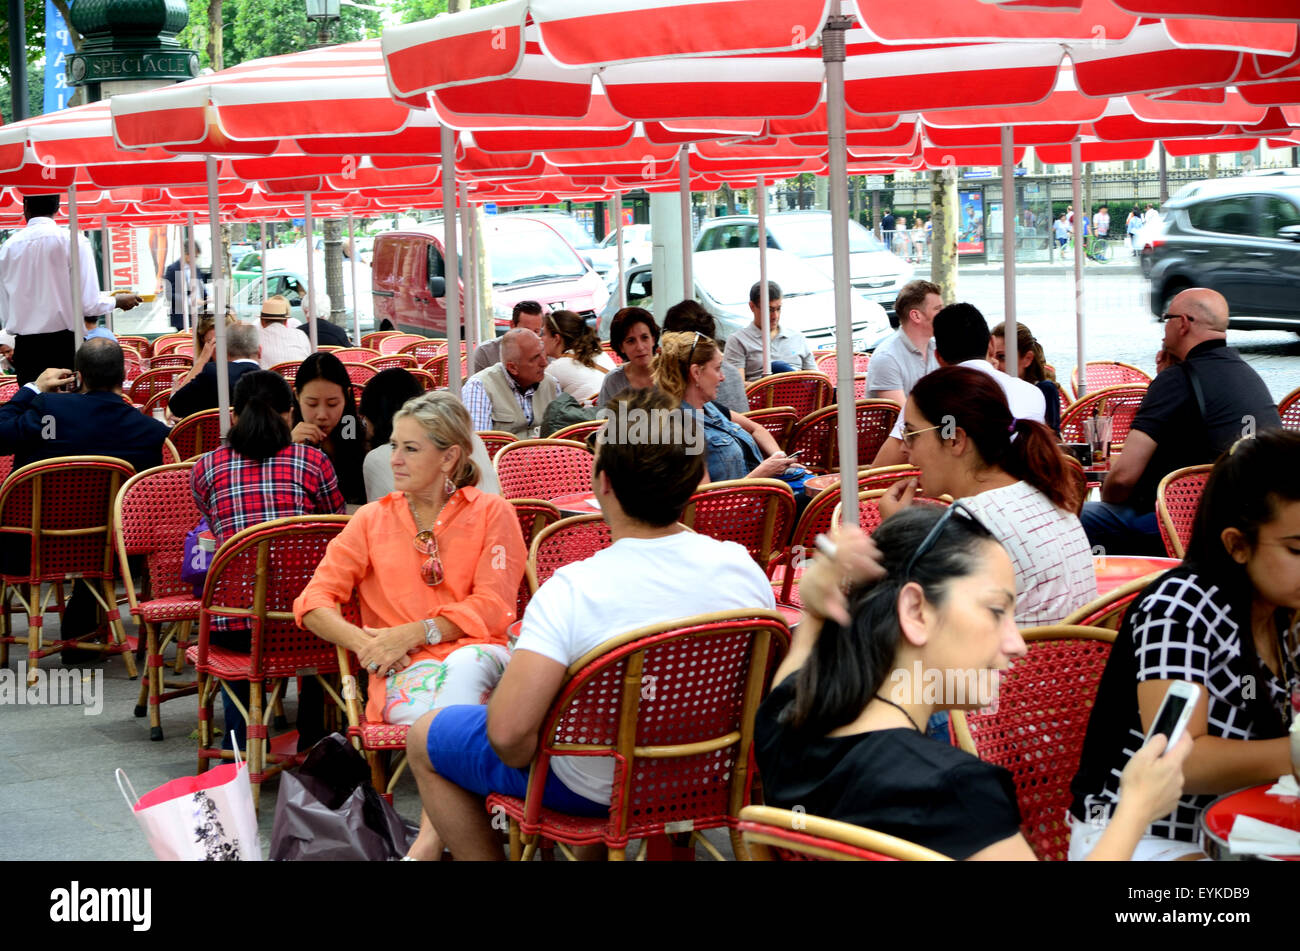 Outdoor dining in a Cafe on the Avenue des Champs Elysees in Paris. - Stock Image